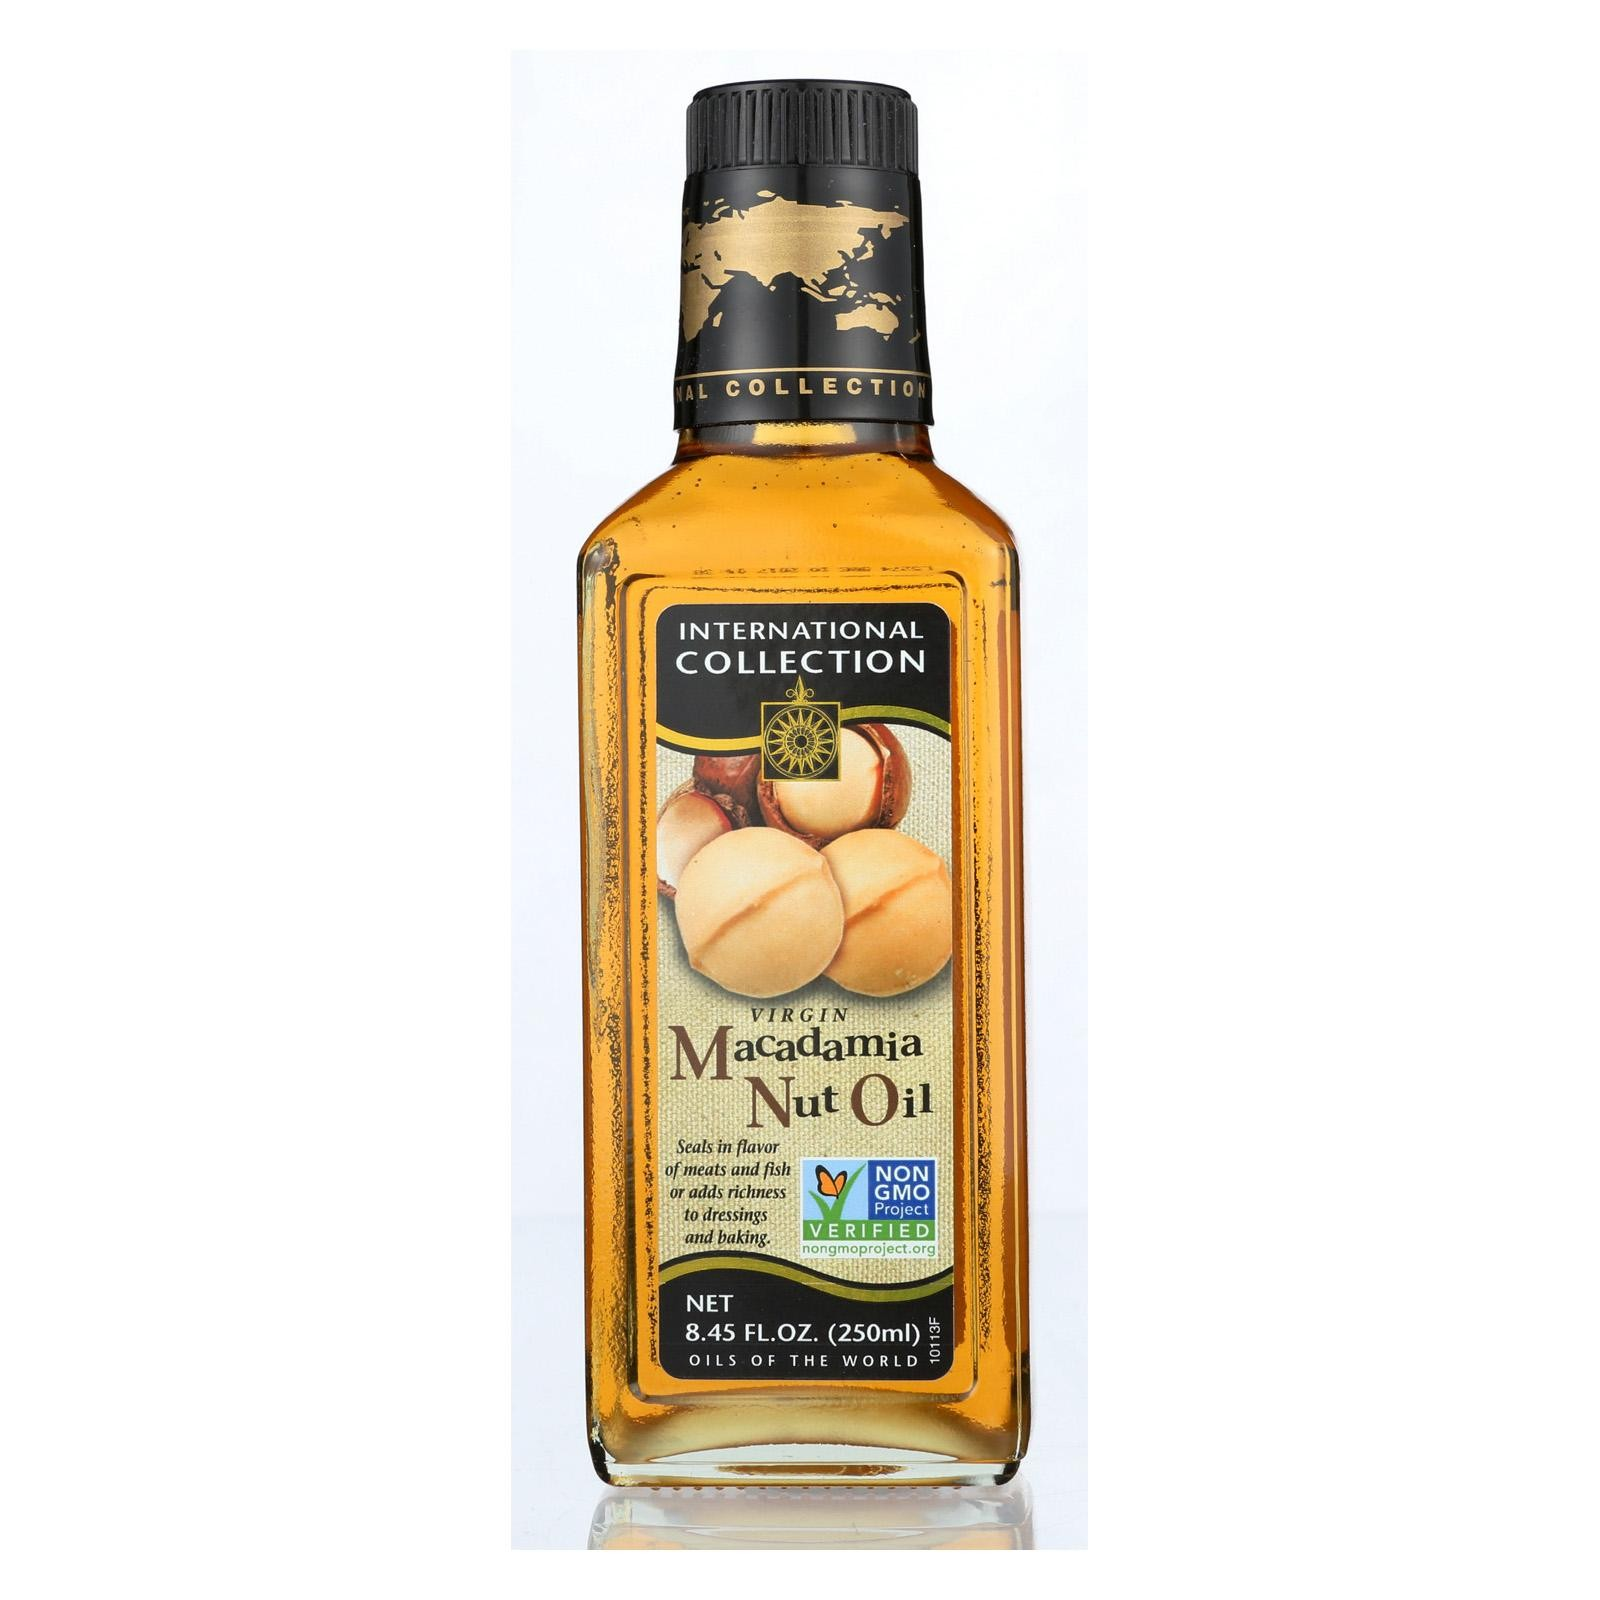 International Collection Oil - Macadamia Nut Oil - Pack of 6 - 8.45 Oz